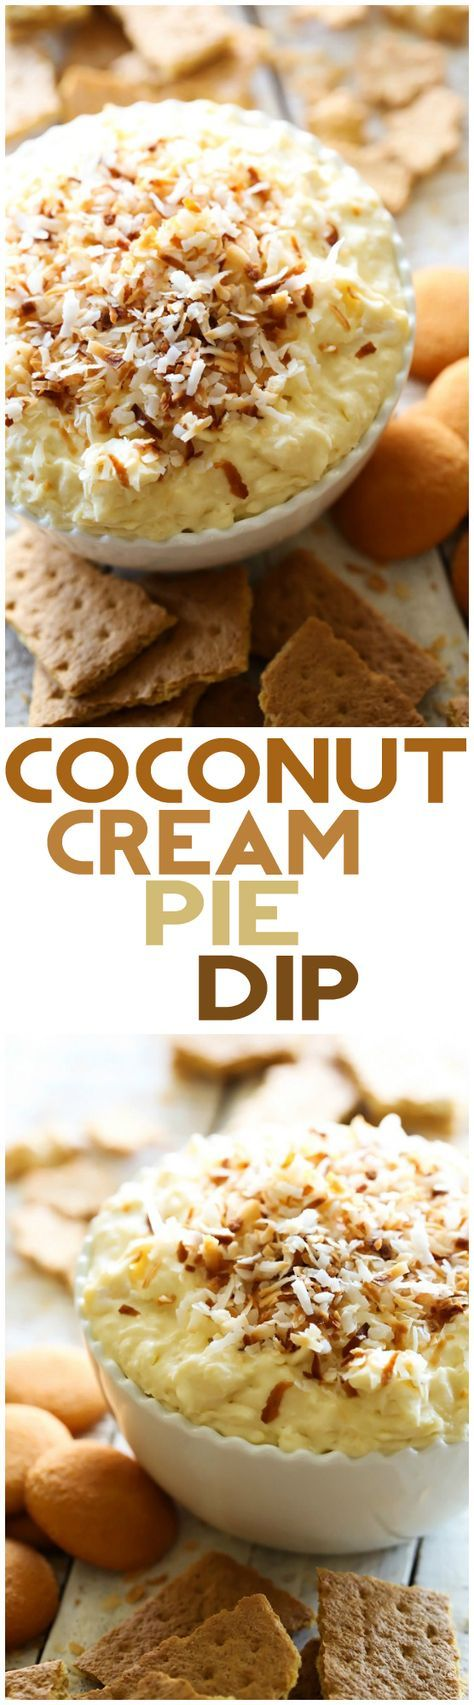 This Coconut Cream Pie Dip is seriously INCREDIBLE! The most delicious coconut cream pie transformed into one unforgettable appetizer! You will not be able to stop eating this stuff it is so addictive and absolutely DIVINE!